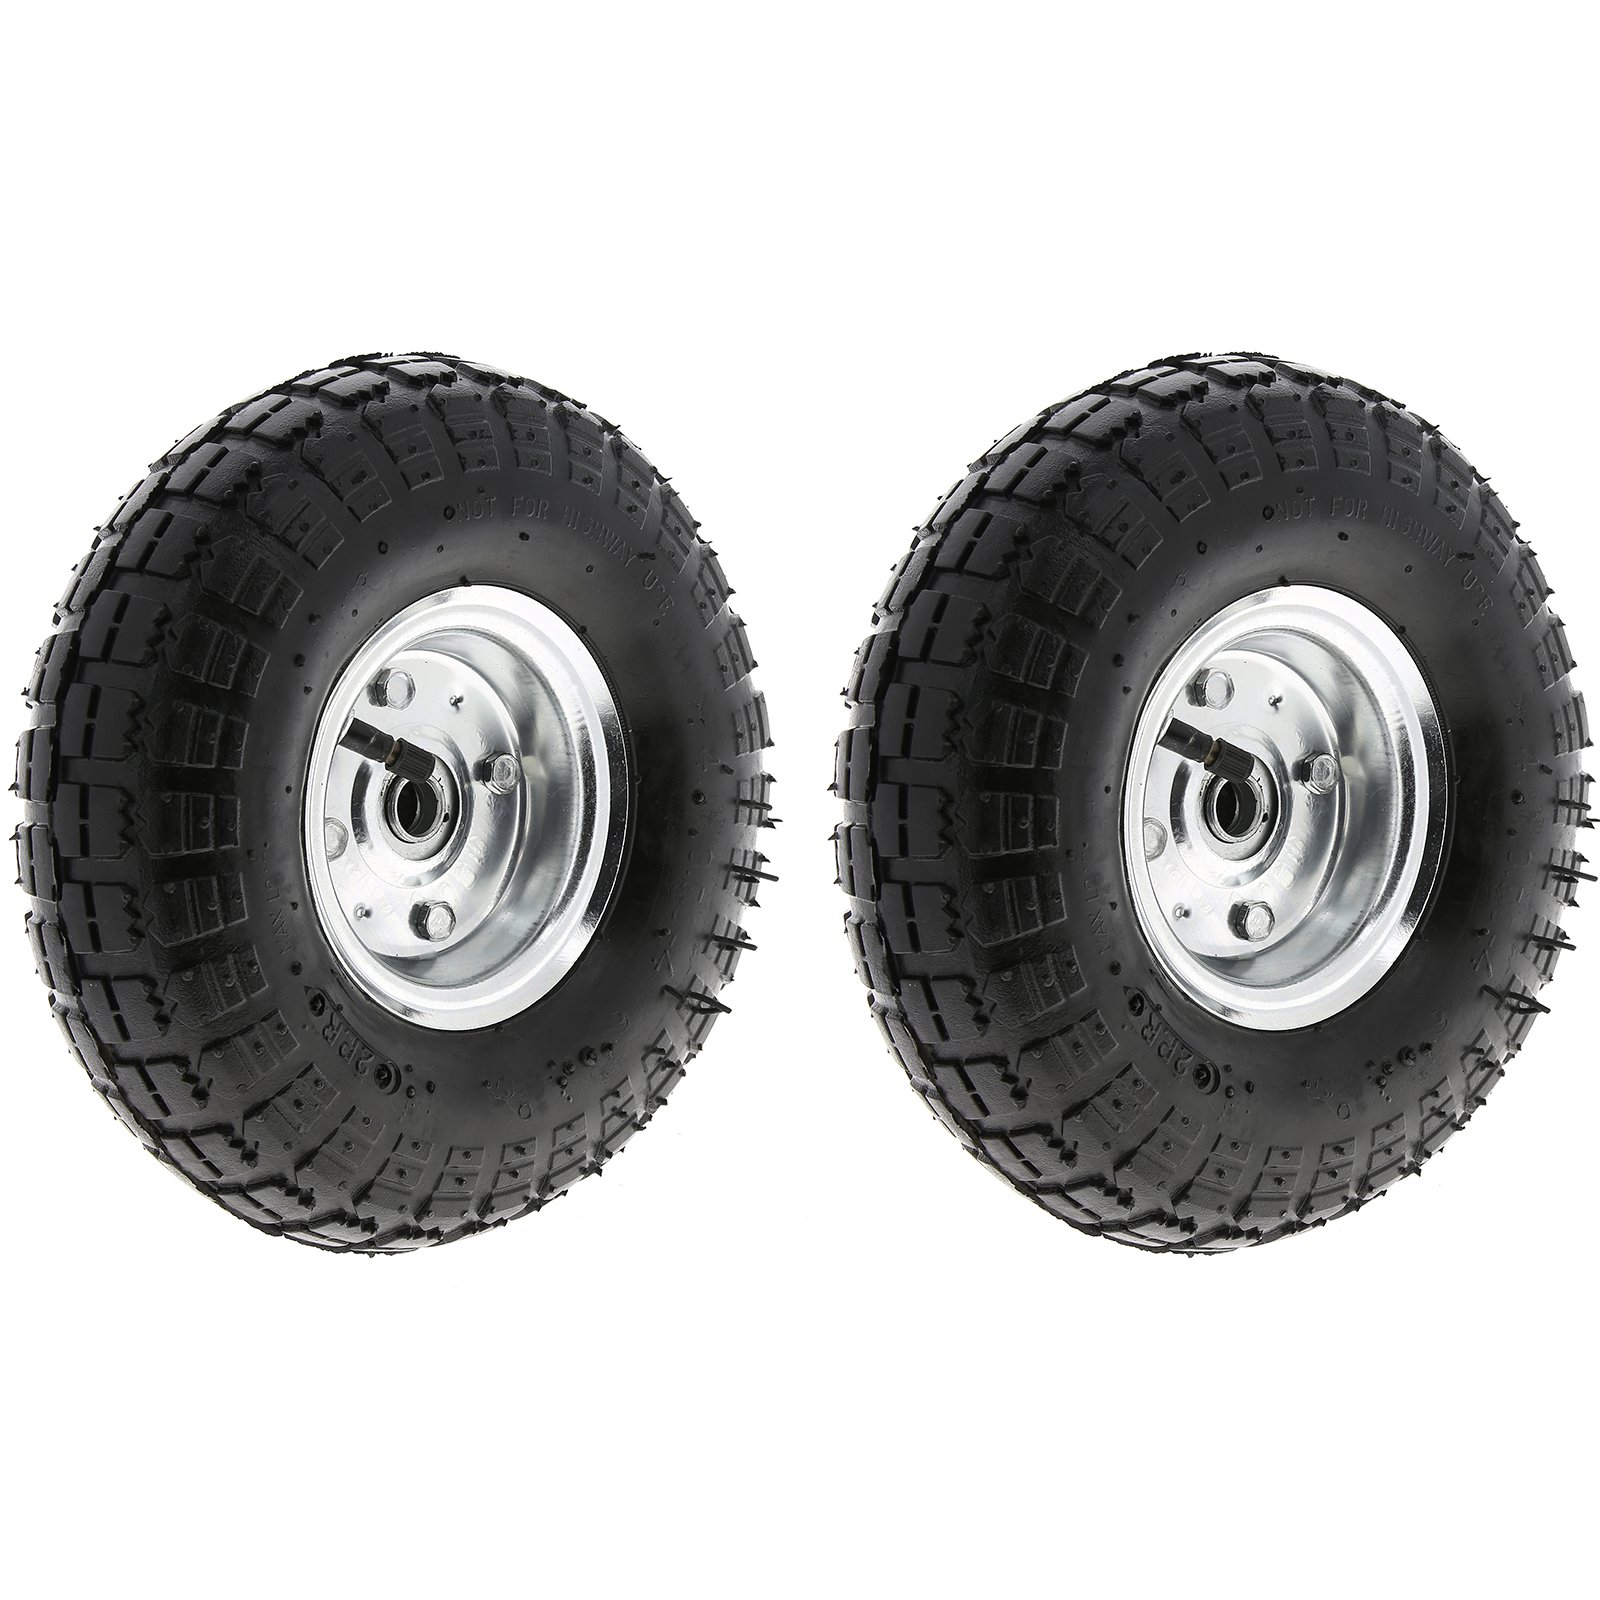 "2X10/"" PNEUMATIC SACK TRUCK TROLLEY WHEEL BARROW TYRE TYRES"